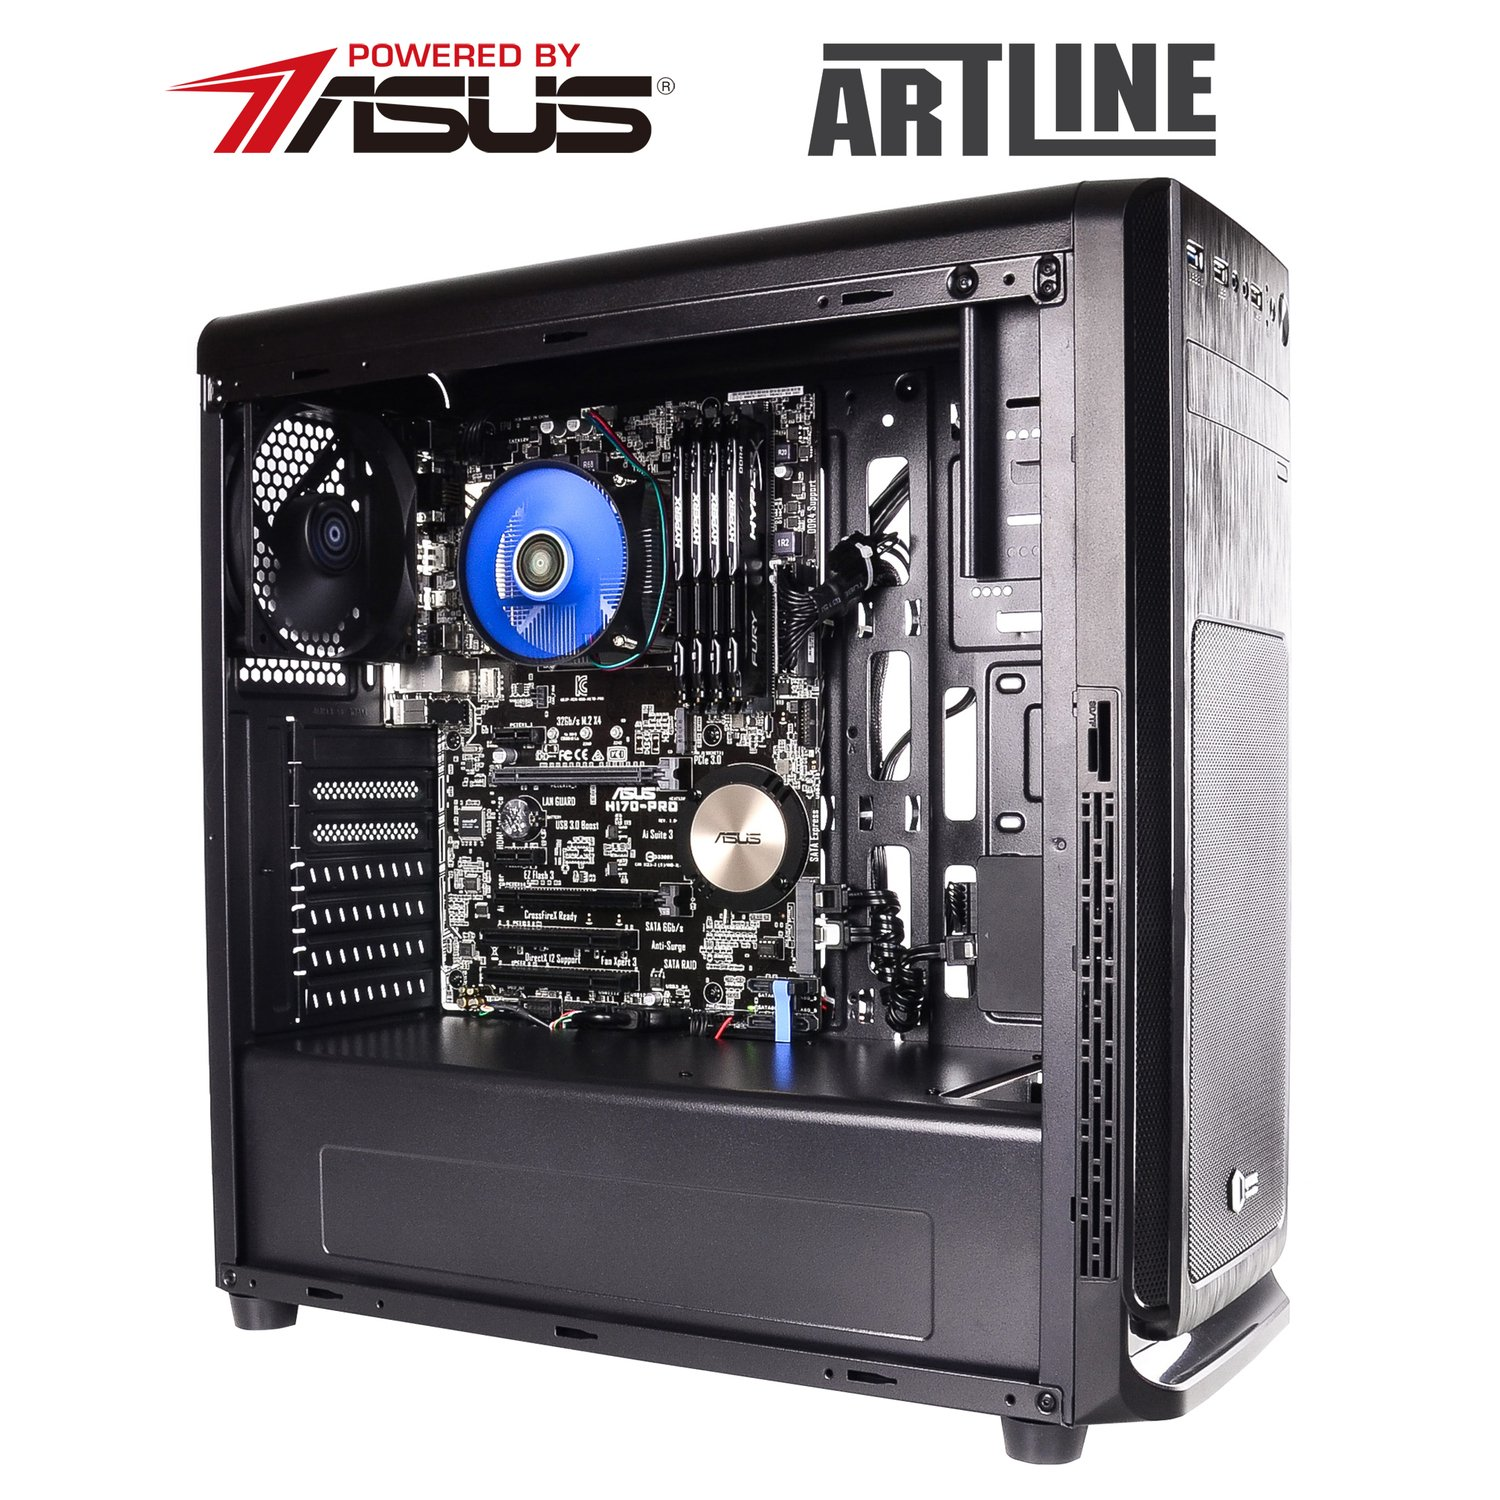 Сервер ARTLINE Business T19 (T19v12)